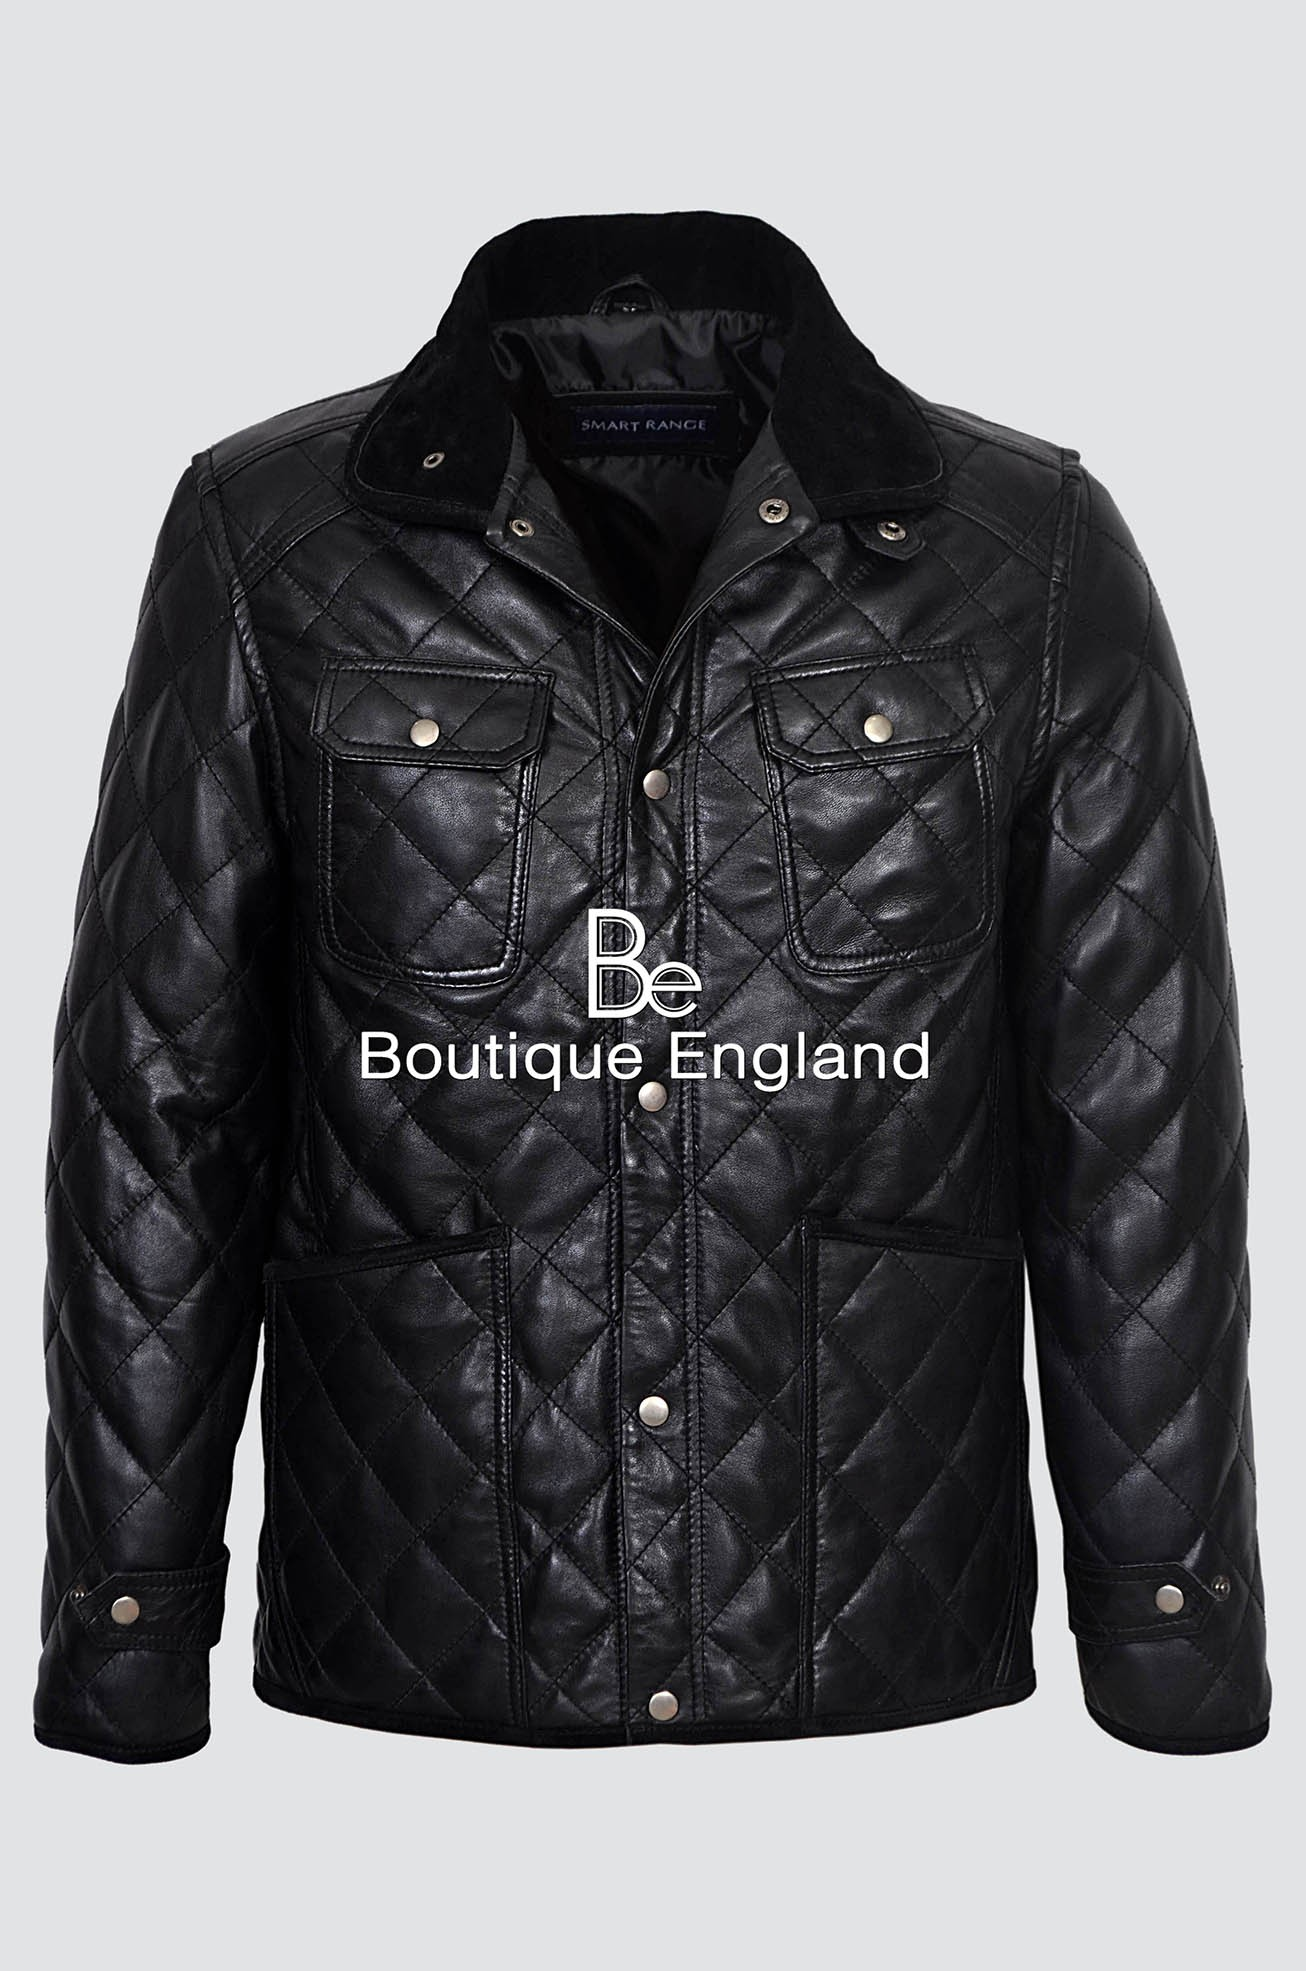 New Men's 2396 Black Quilted Biker Style Vintage Soft Nappa Real Leather Jacket